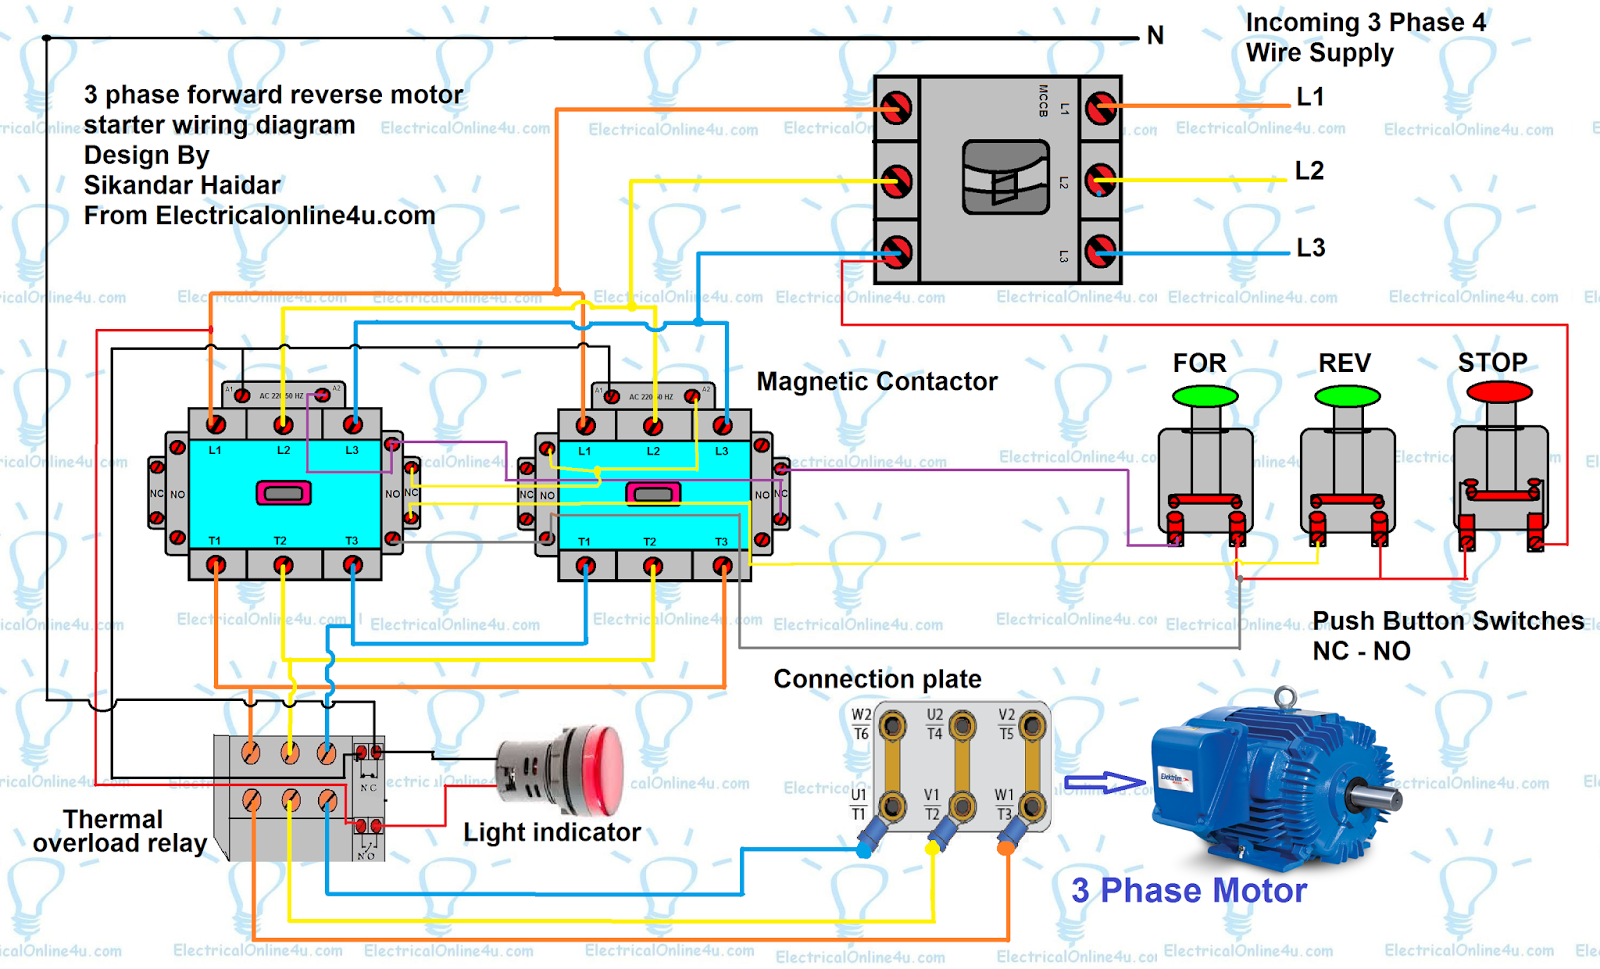 small resolution of forward reverse motor control diagram for 3 phase motor electrical how to wire a double pole circuit breaker electrical online 4u